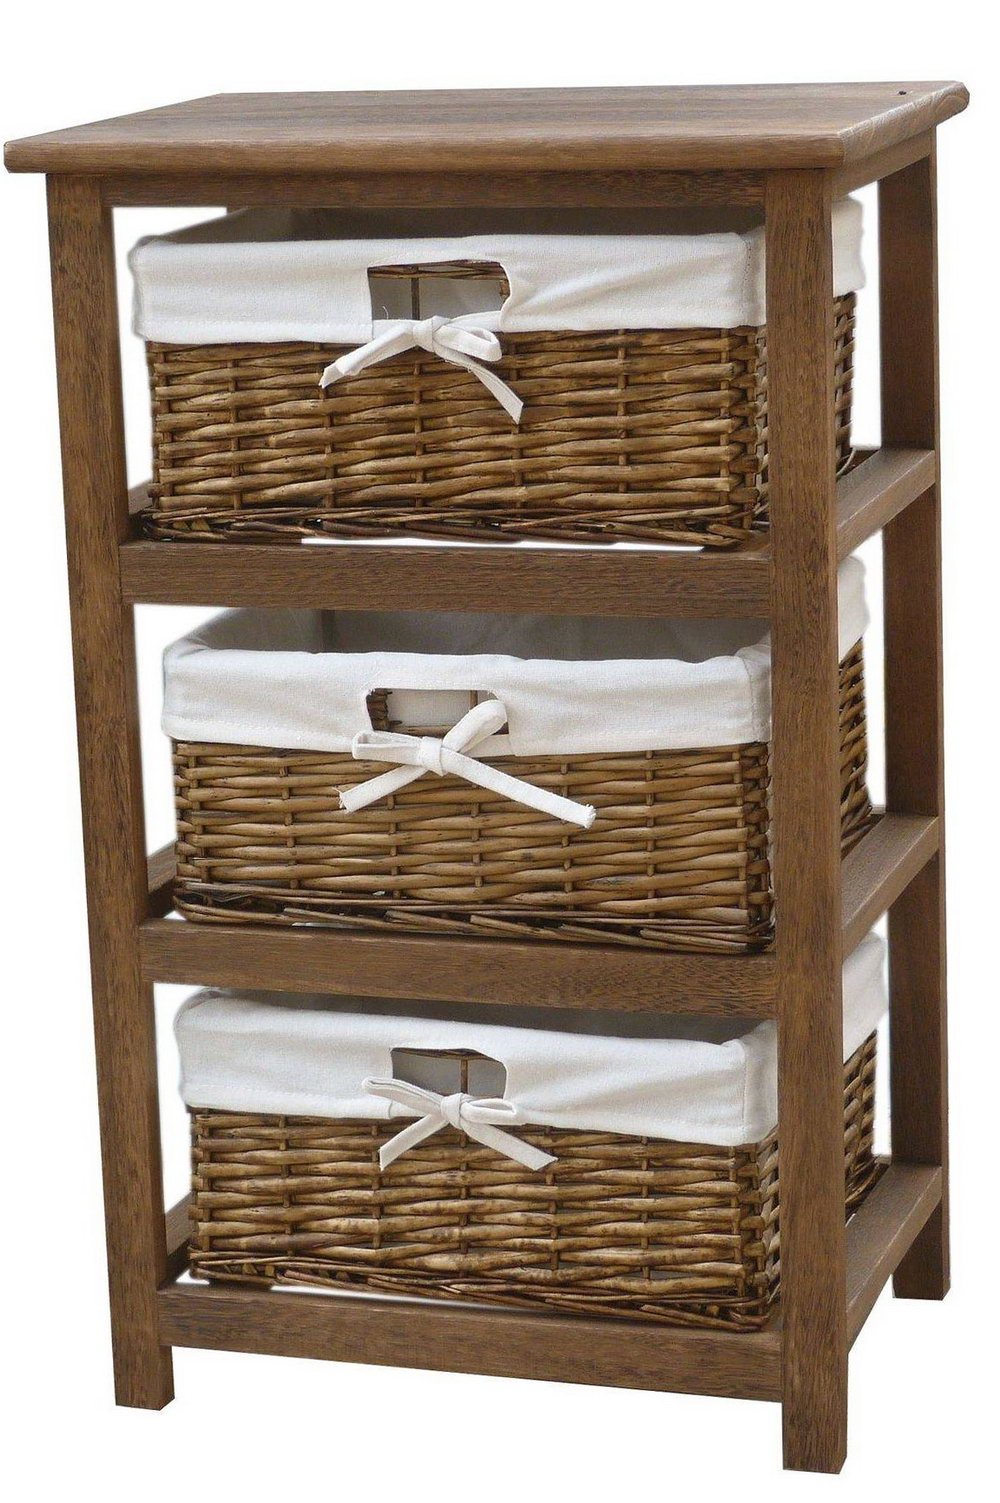 Wooden Storage Cabinets With Baskets